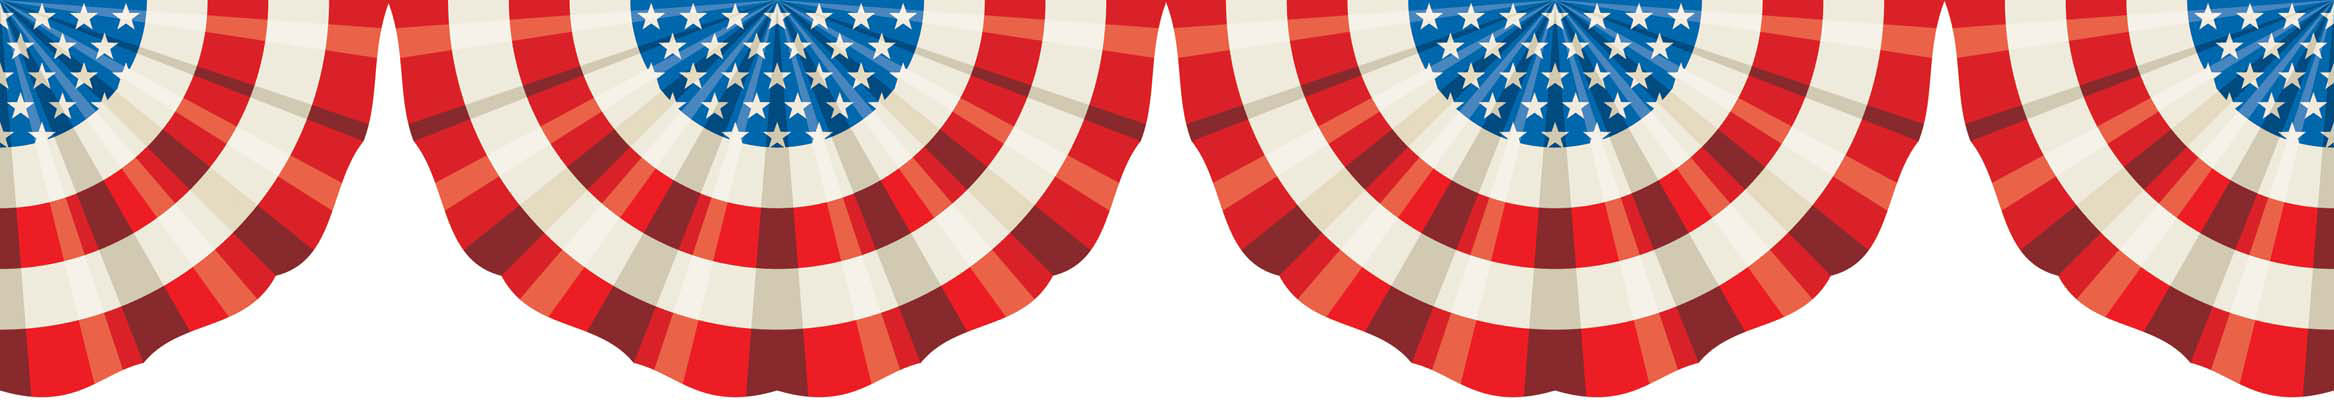 Free Red White And Blue Banner Png, Download Free Clip Art.